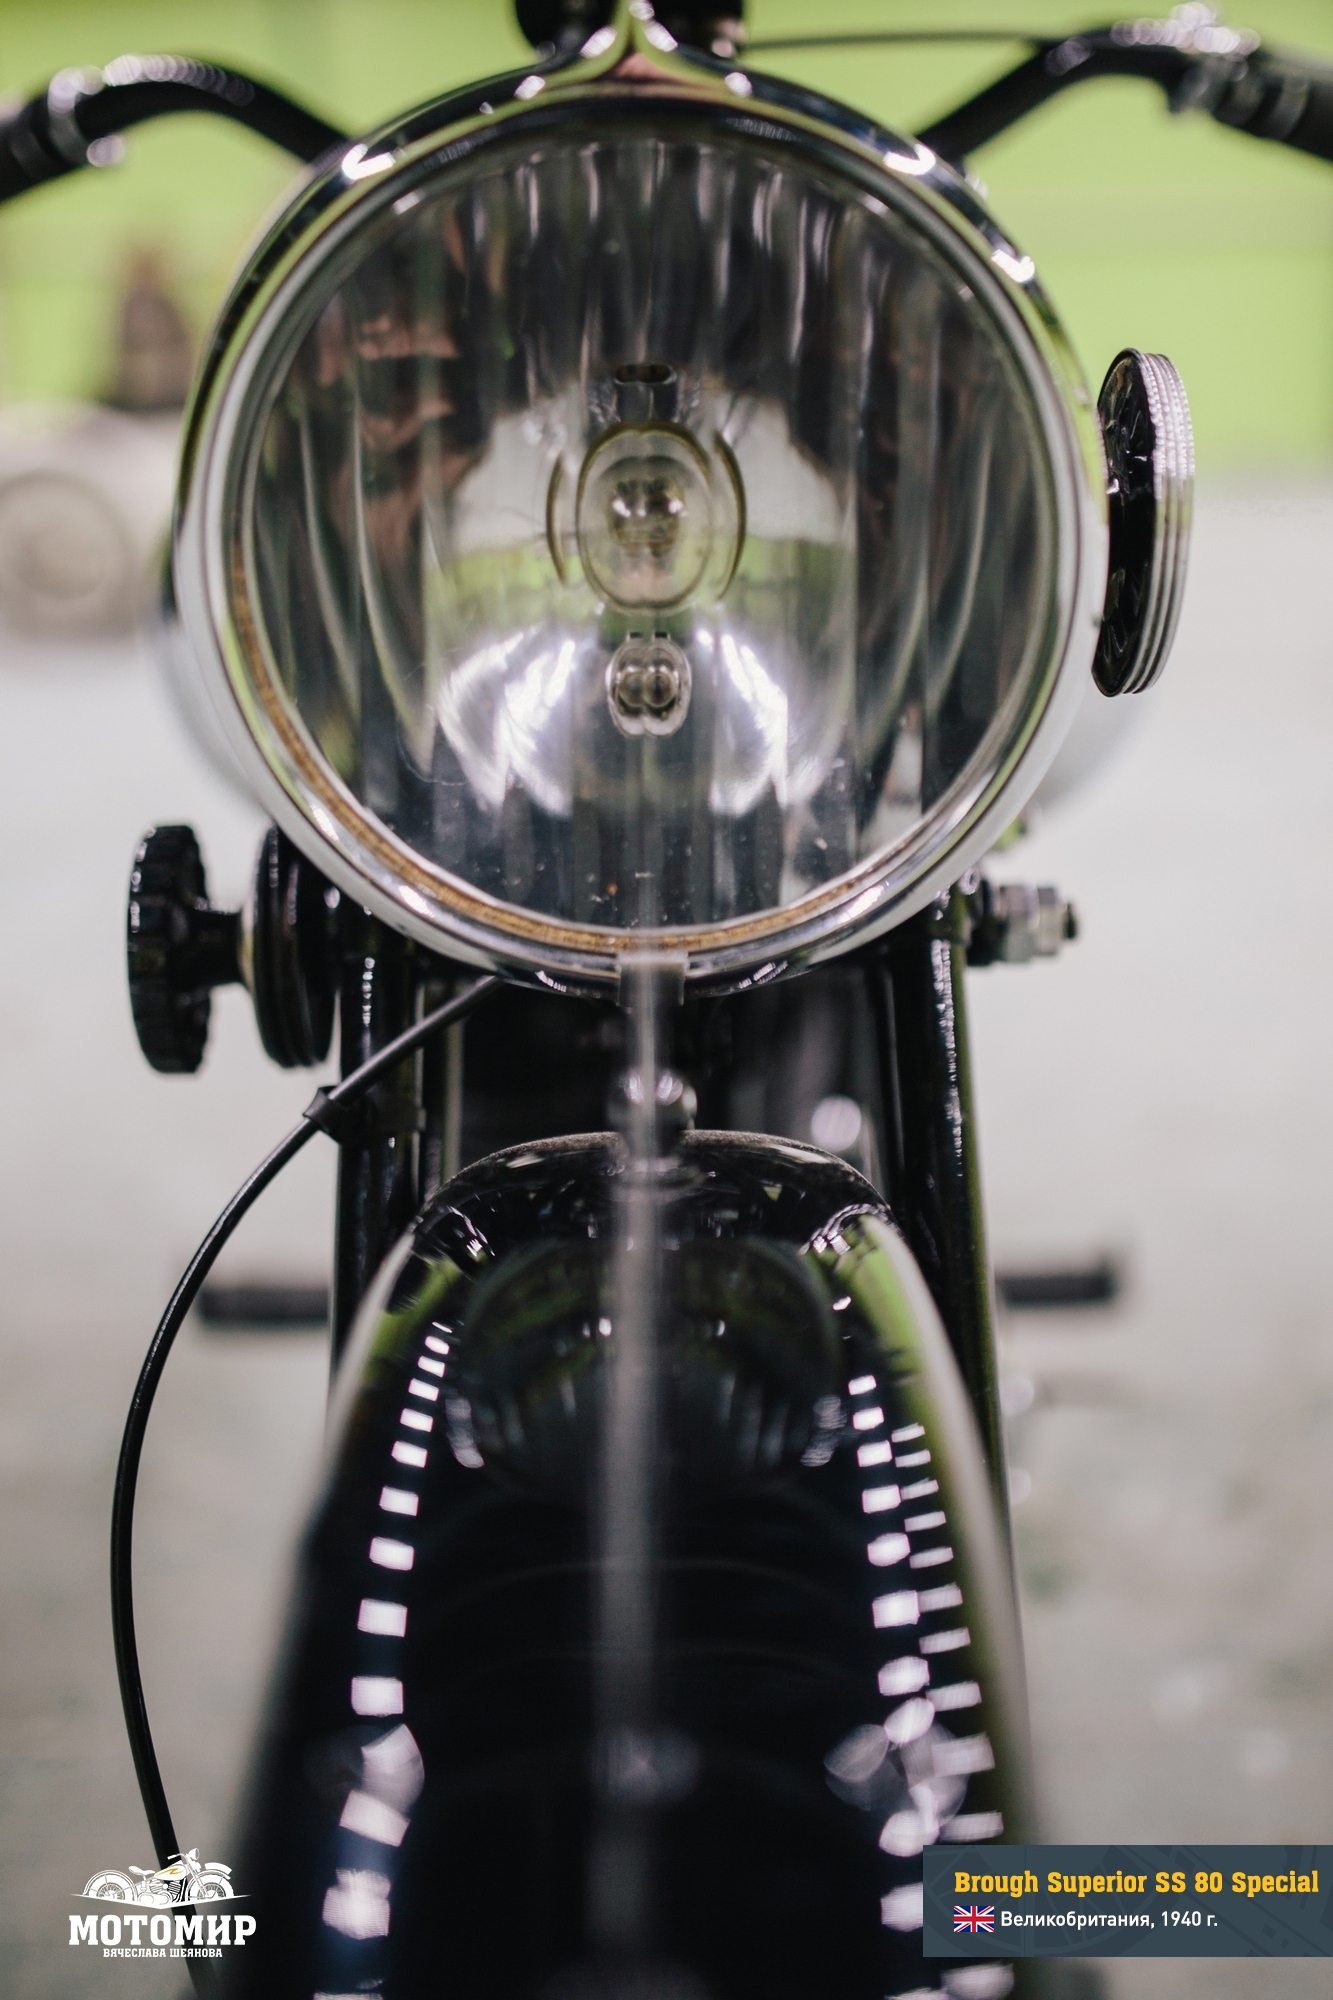 brough-superior-ss-80-201502-web-21